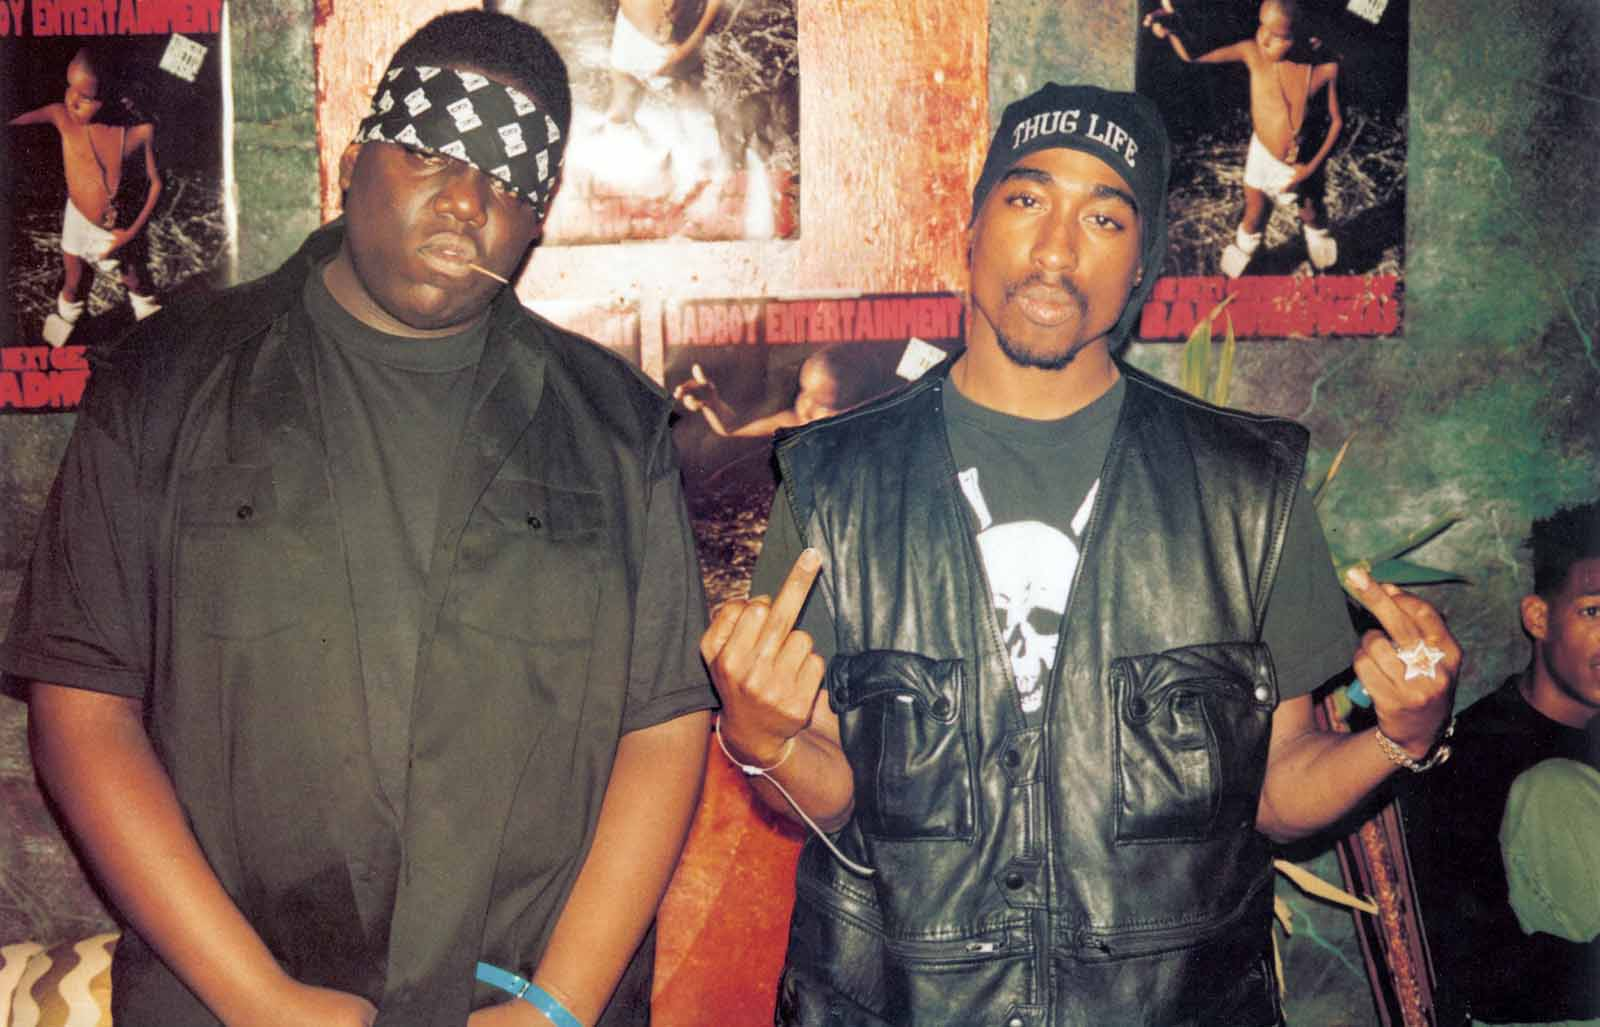 """The """"California Love"""" wasn't there when it comes to the death of Tupac Shakur. Why hasn't Tupac's murder been solved yet? We dive into the mystery."""